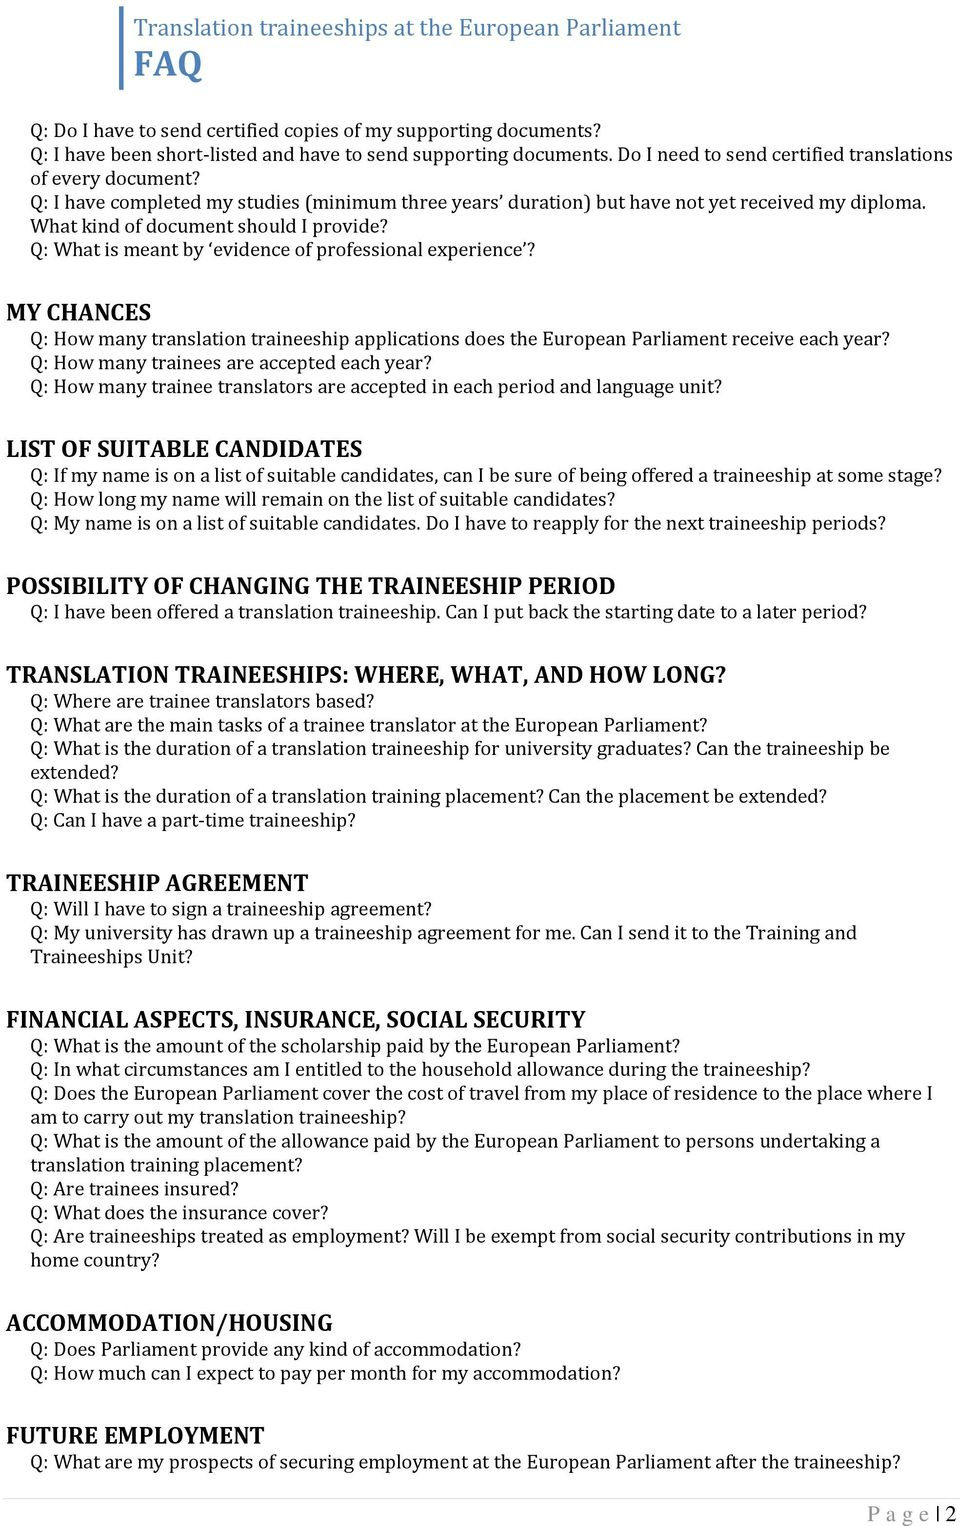 MY CHANCES Q: How many translation traineeship applications does the European Parliament receive each year? Q: How many trainees are accepted each year?